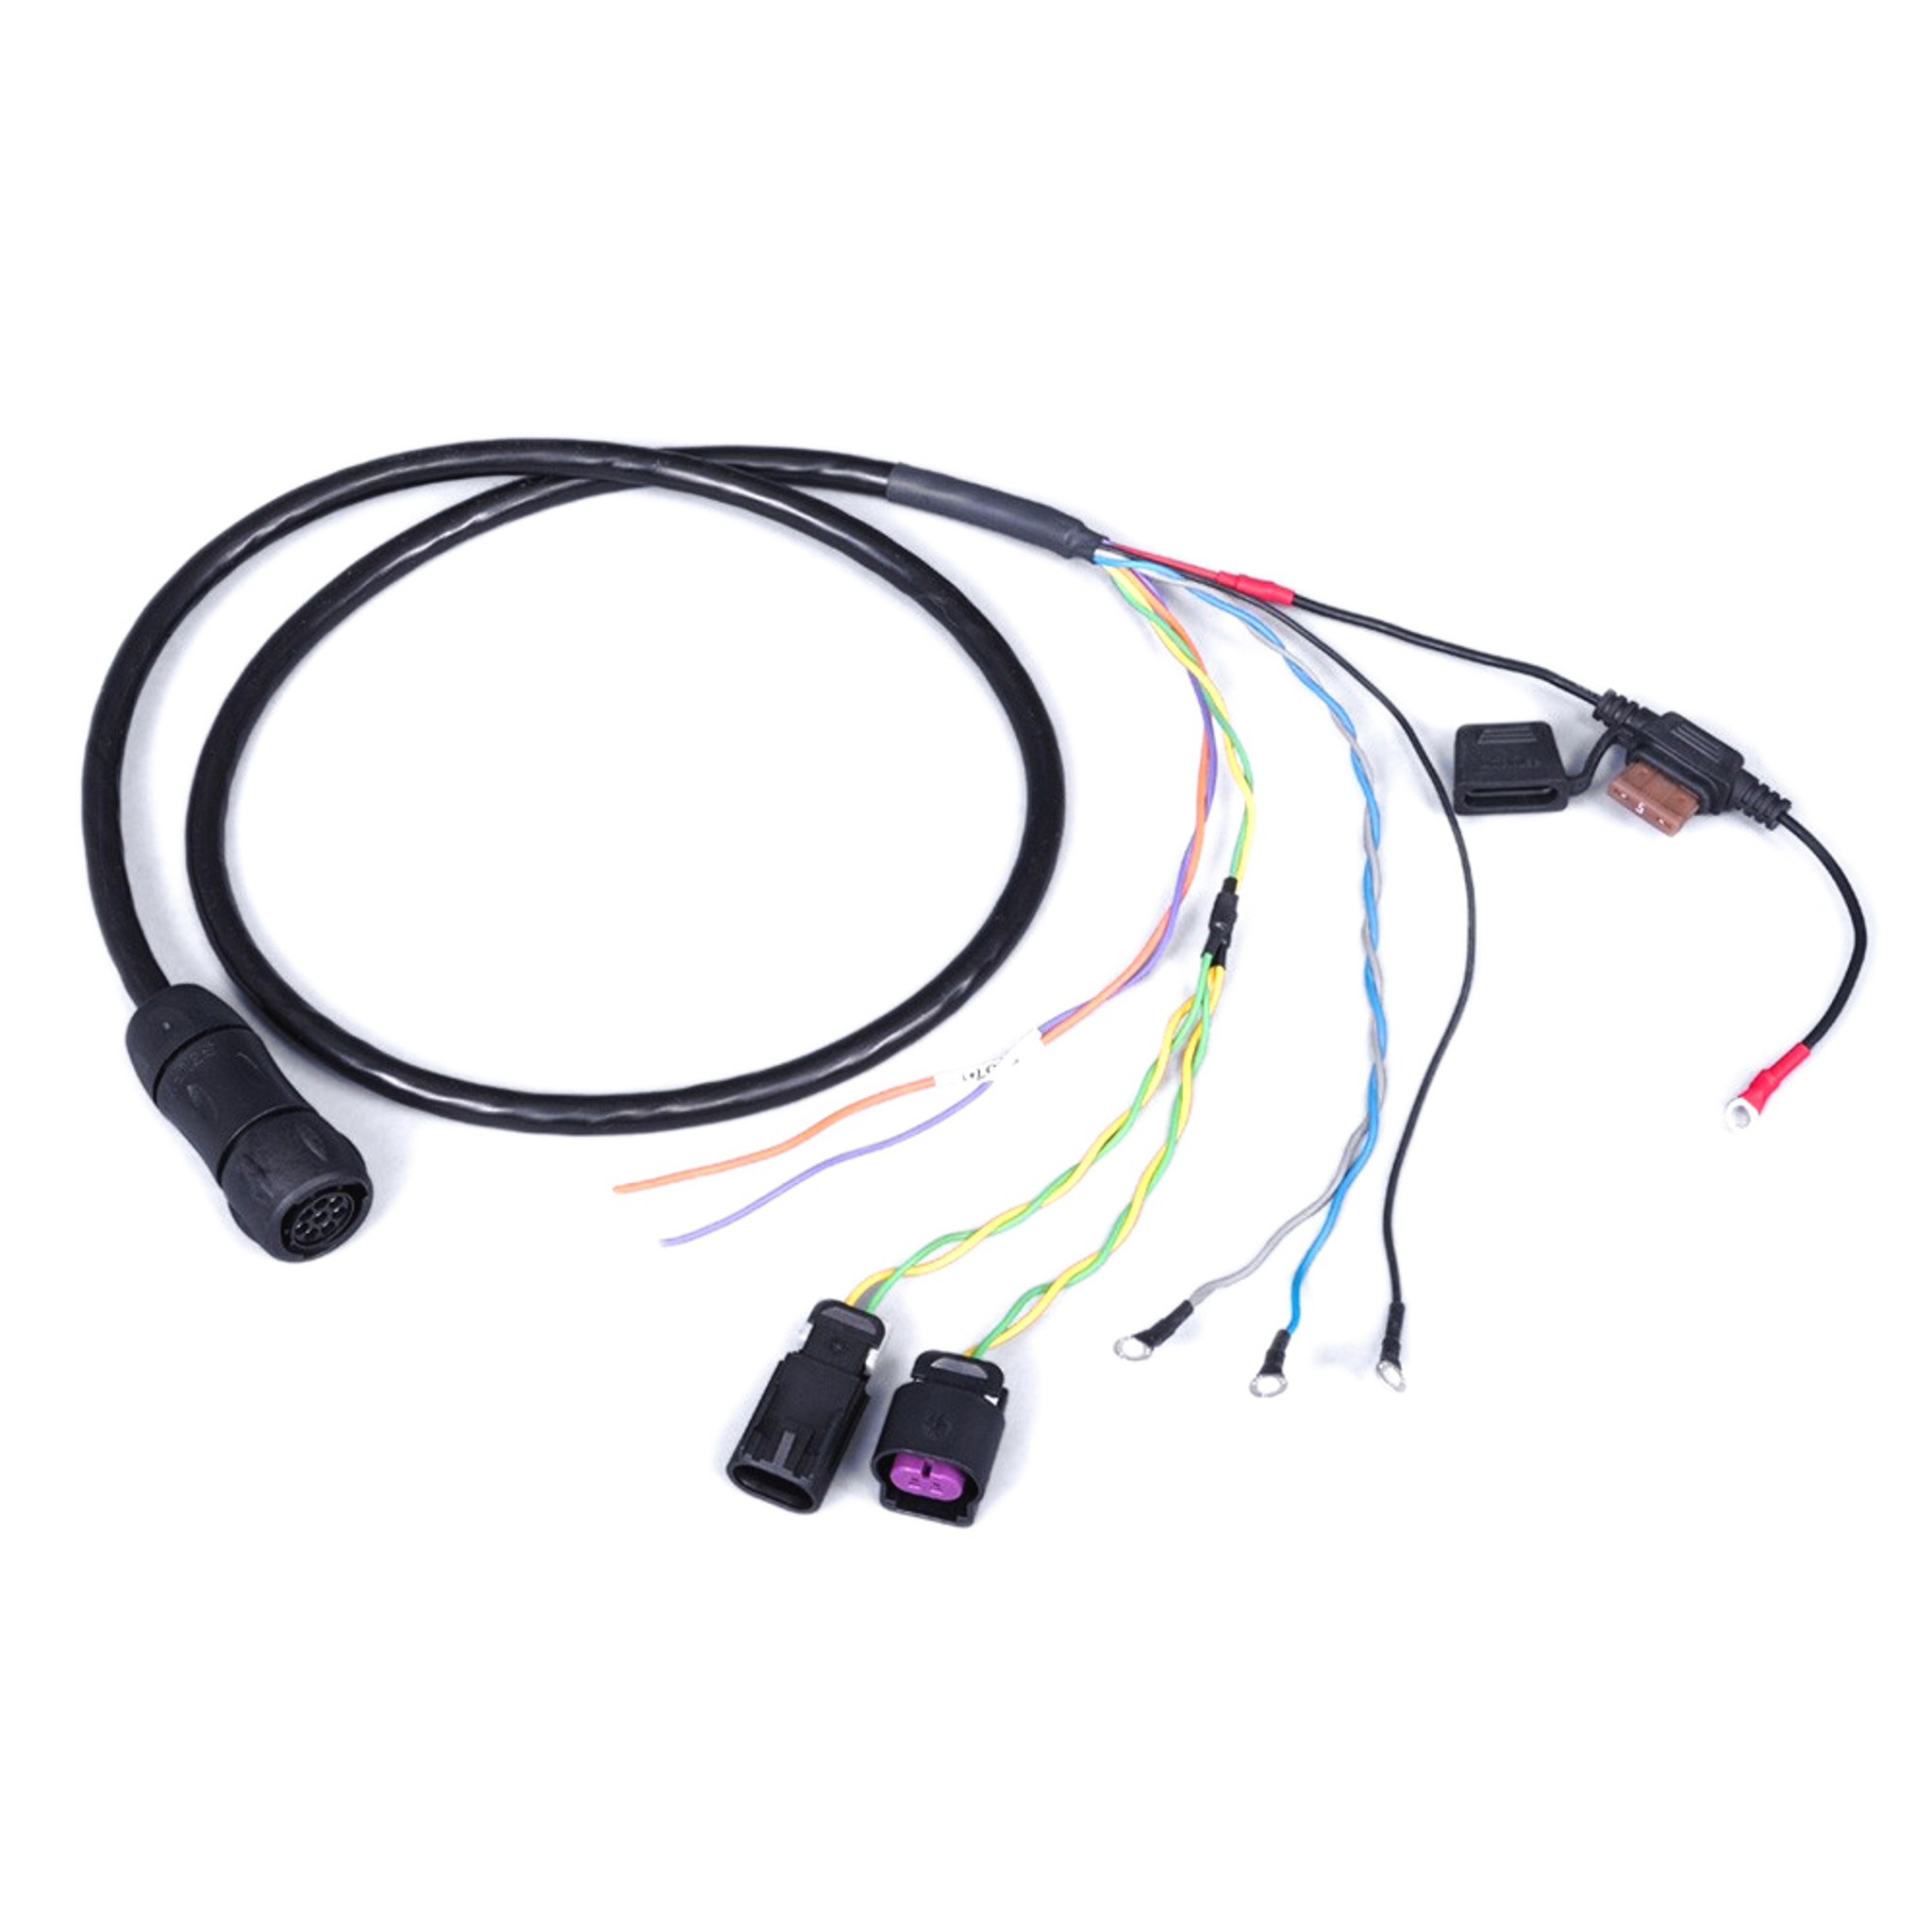 mack spider cable for tnd 760 - rand mcnally store  rand mcnally